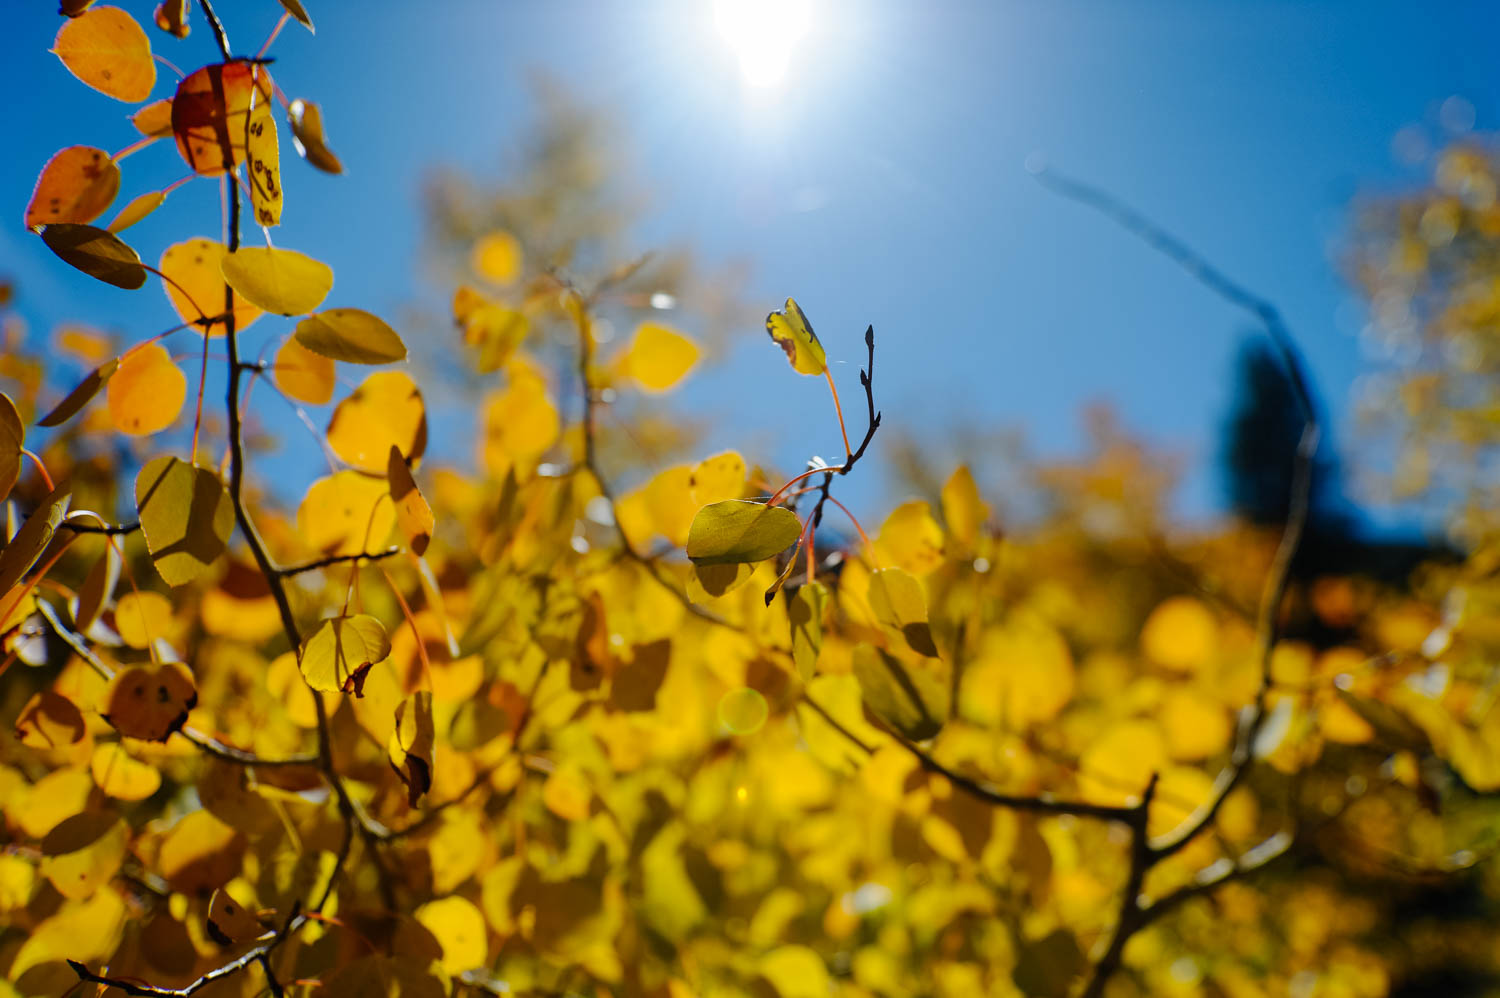 The aspens are turning yellow in the Sierras already!